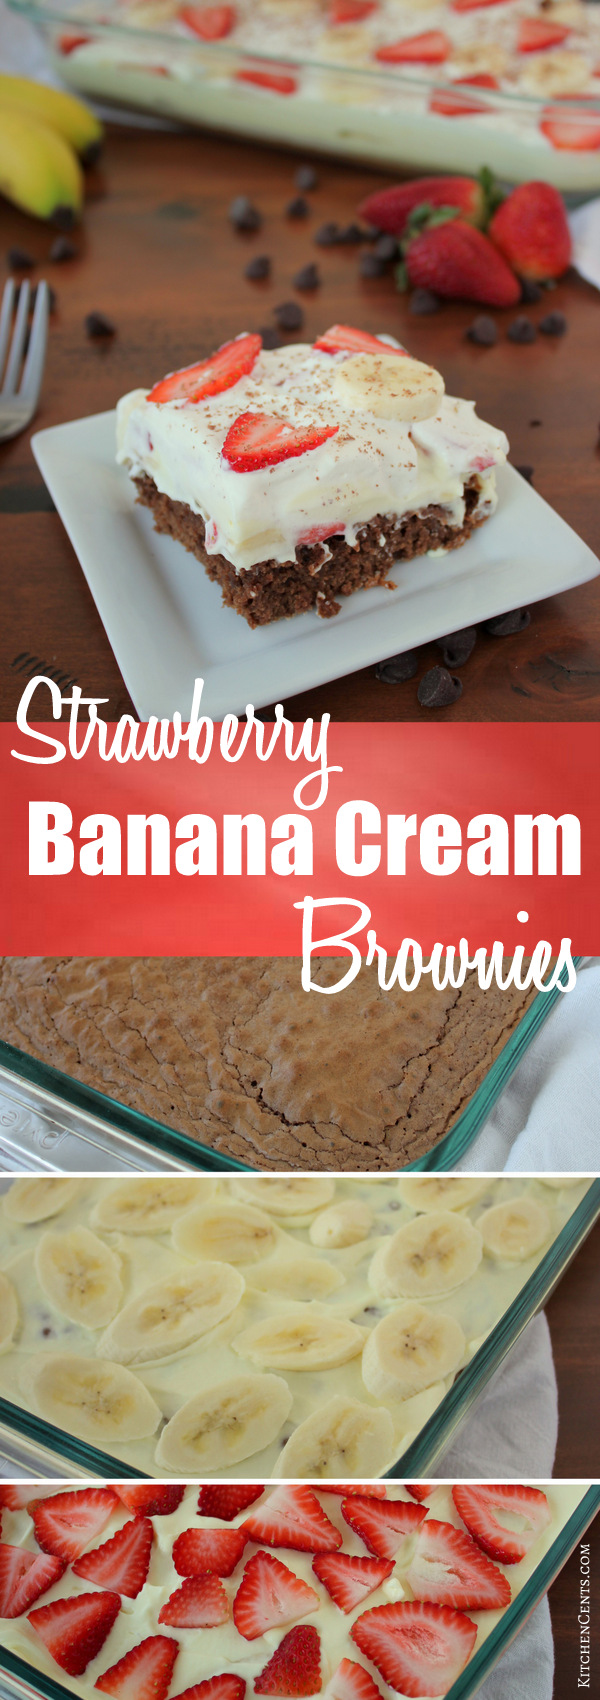 Easy Strawberry Banana Cream Brownies | KitchenCents.com